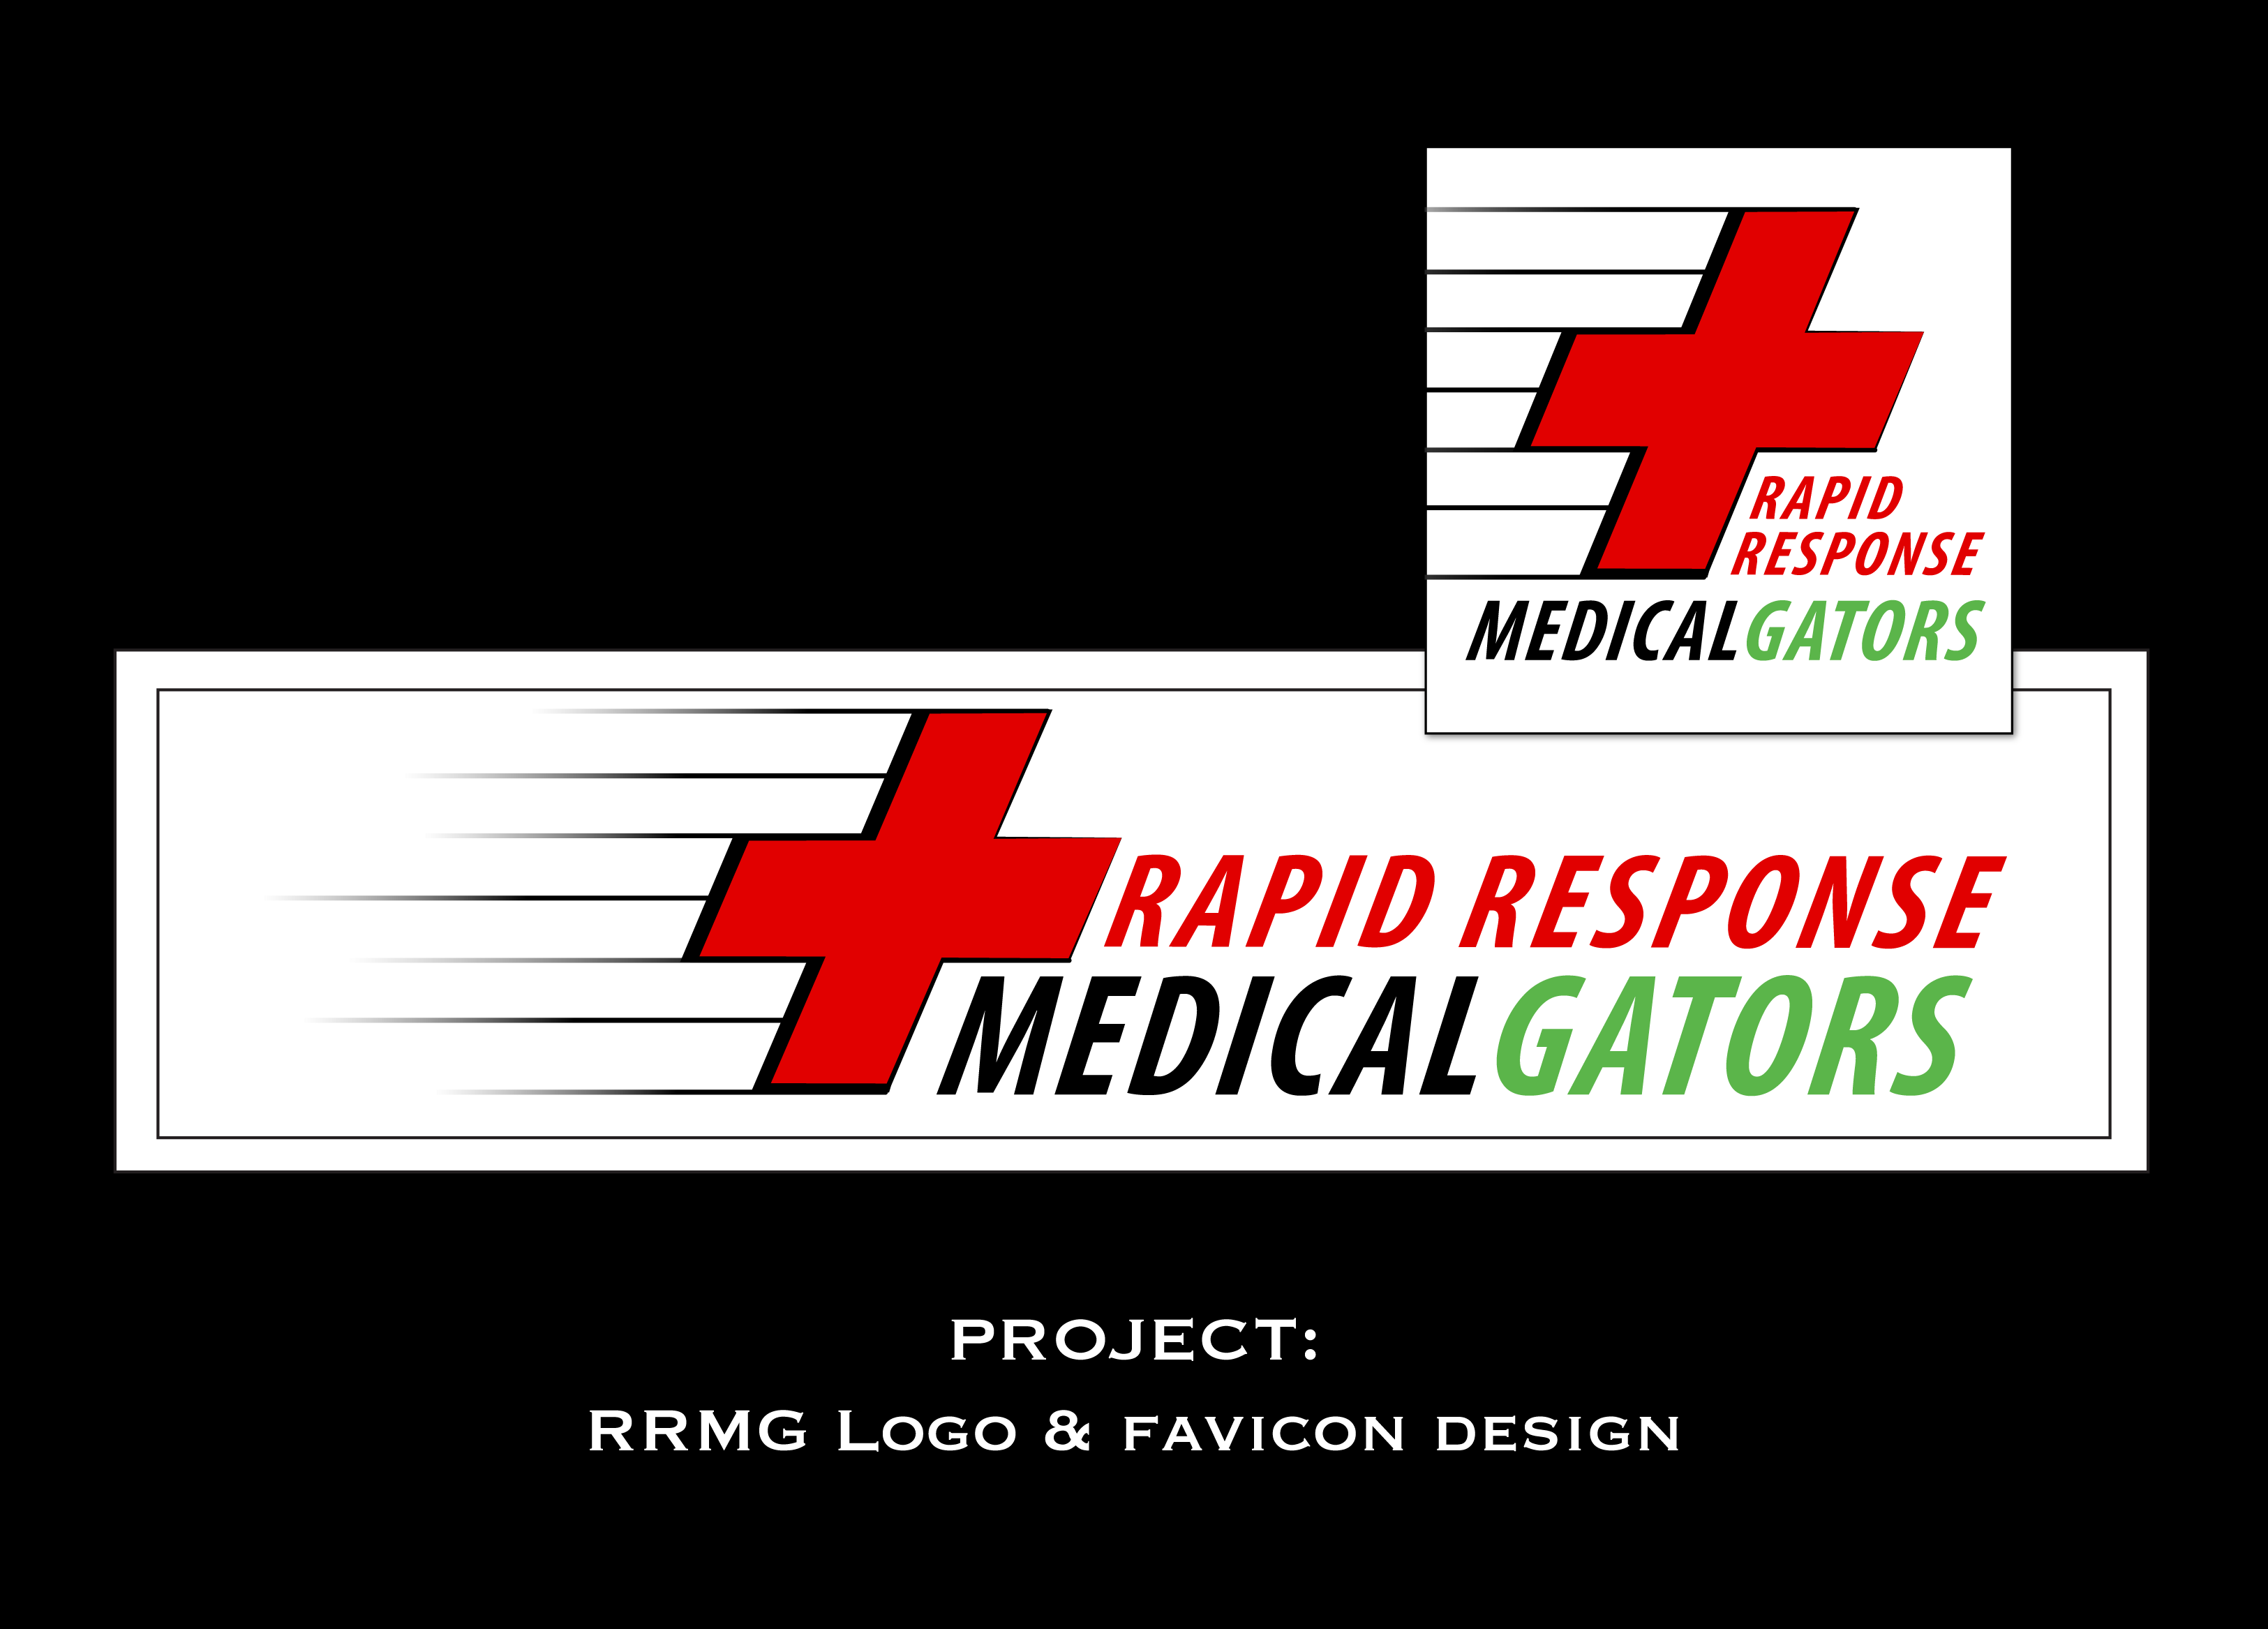 RRMG logo and favicon